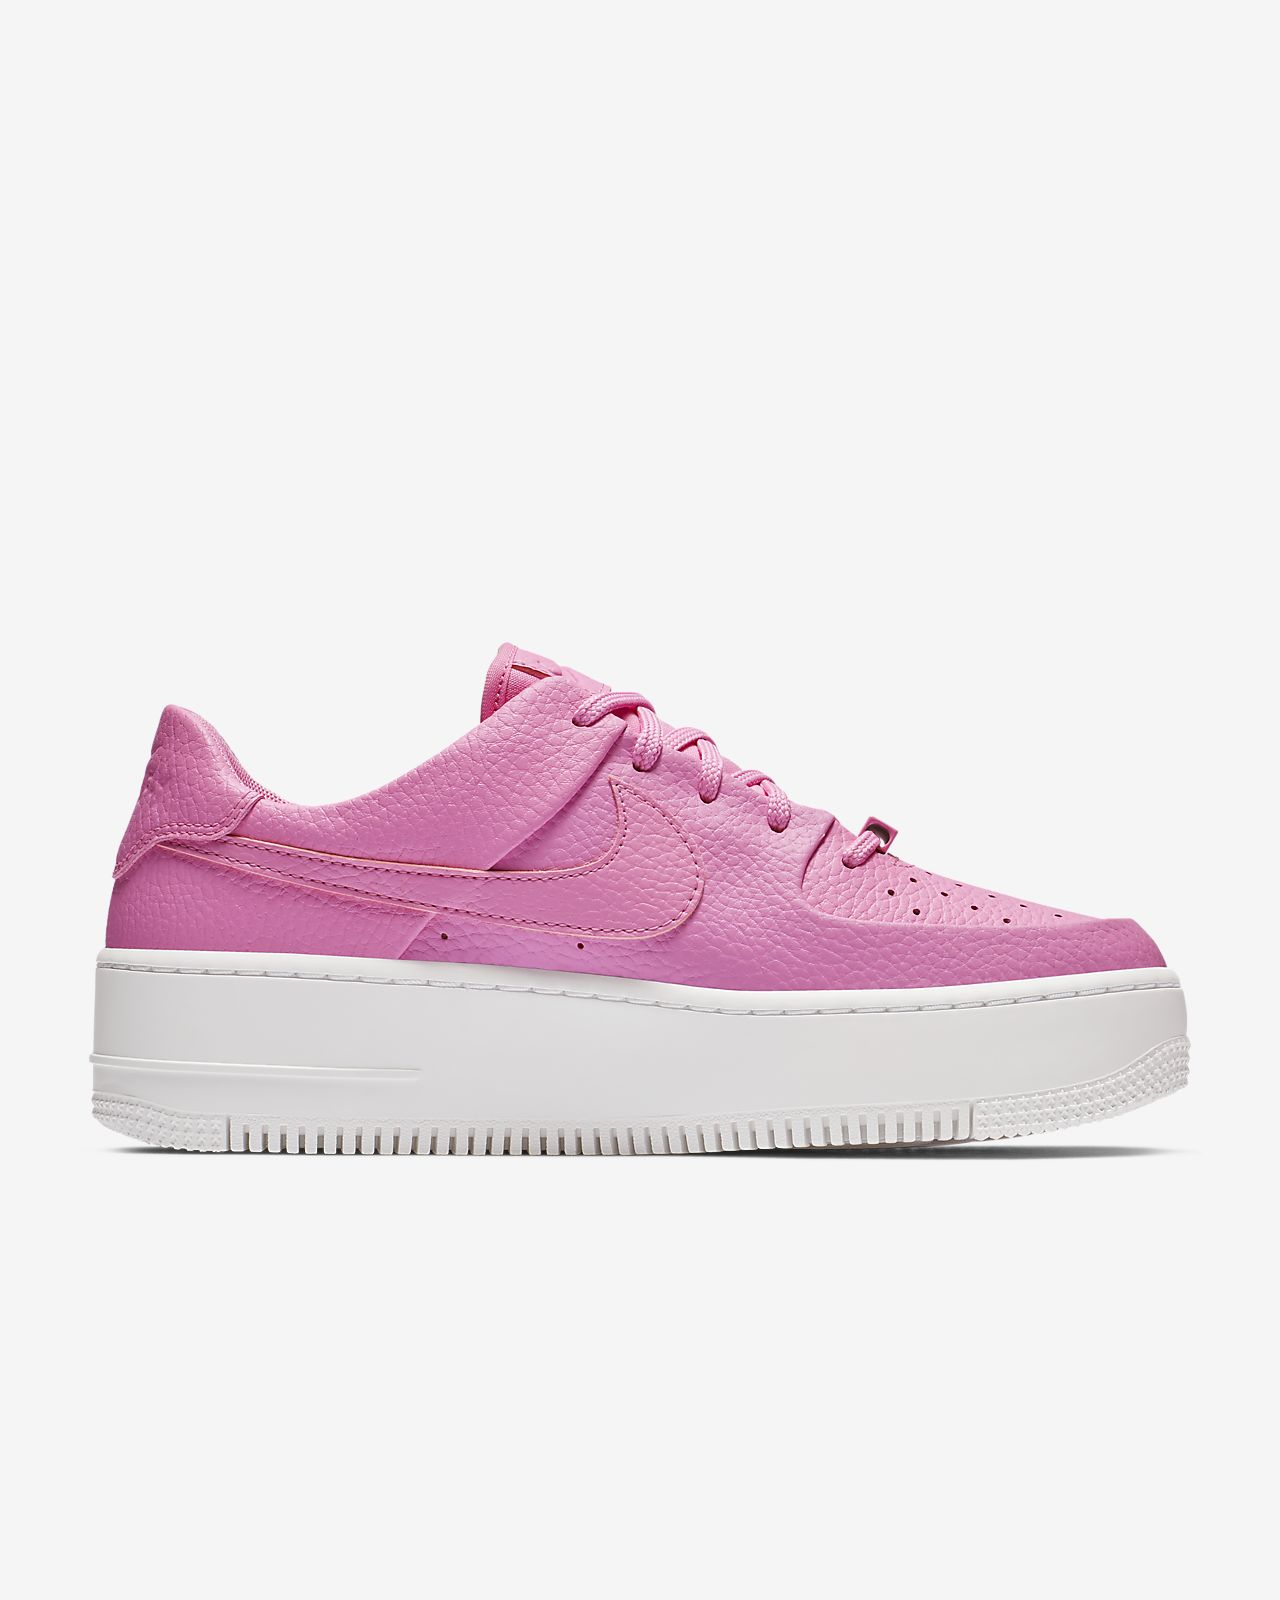 pas cher pour réduction 8747a 788e2 Nike Air Force 1 Sage Low Zapatillas - Mujer